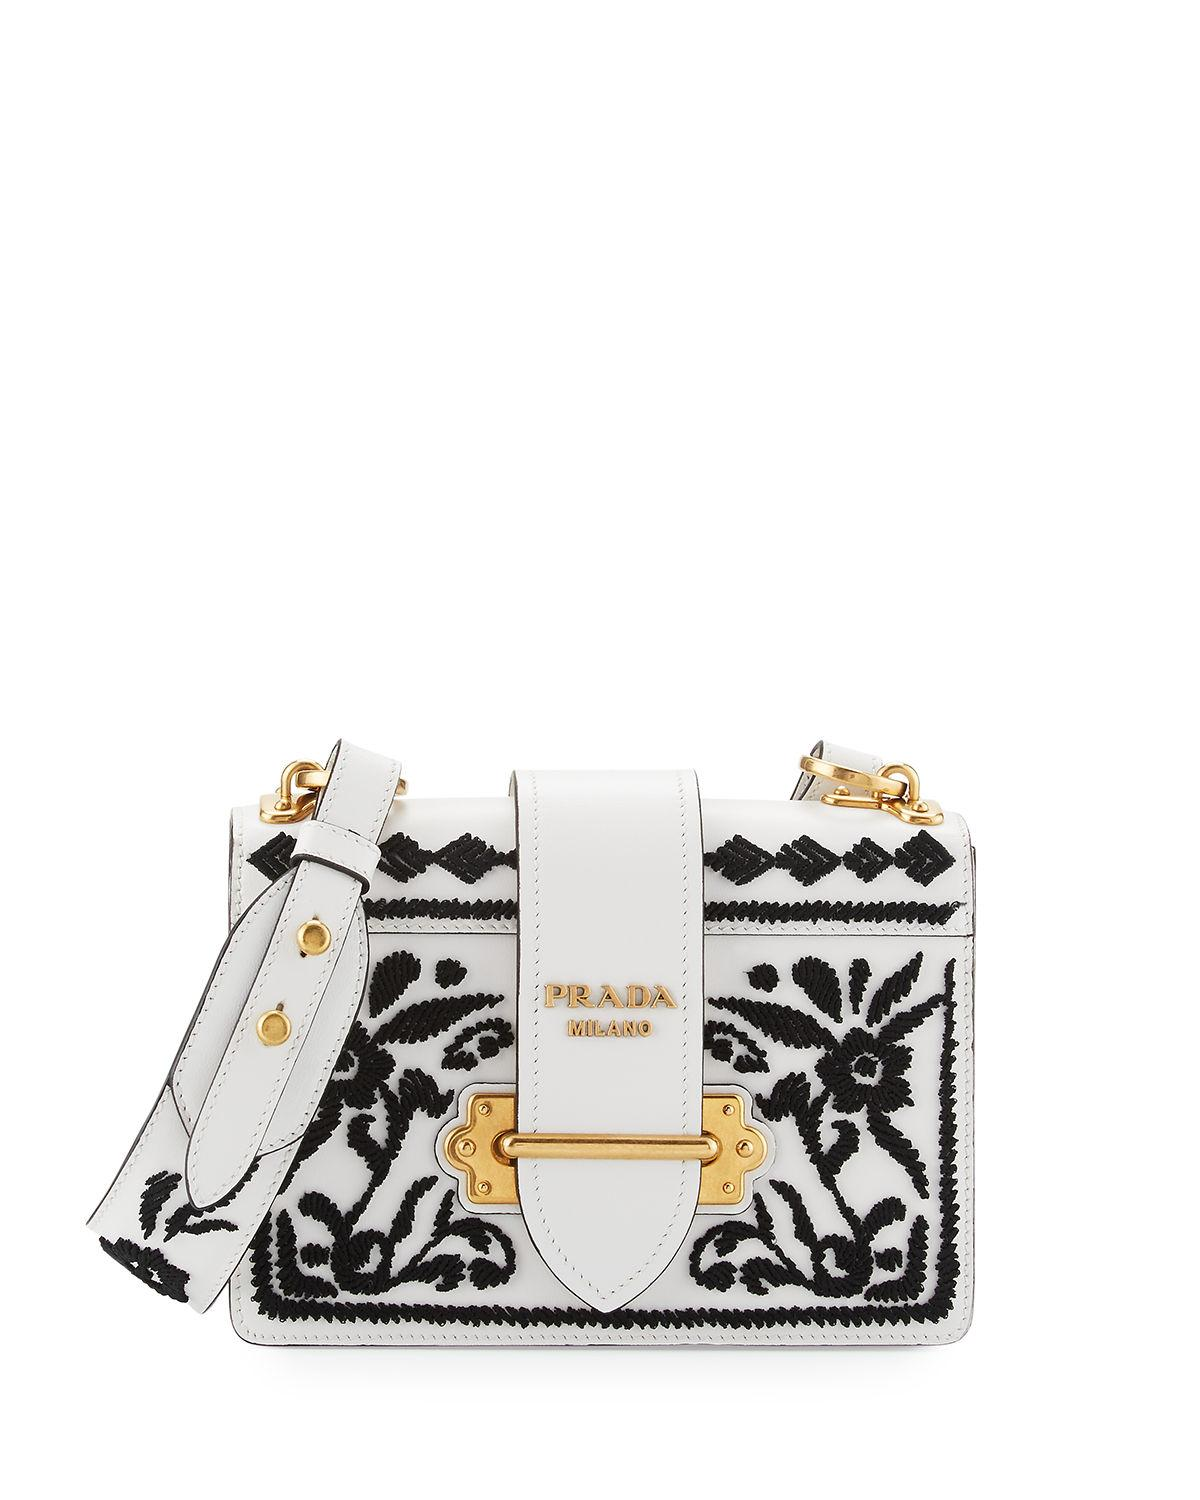 c94b4c9aabe5 Lyst - Prada Embroidered Cahier Bag